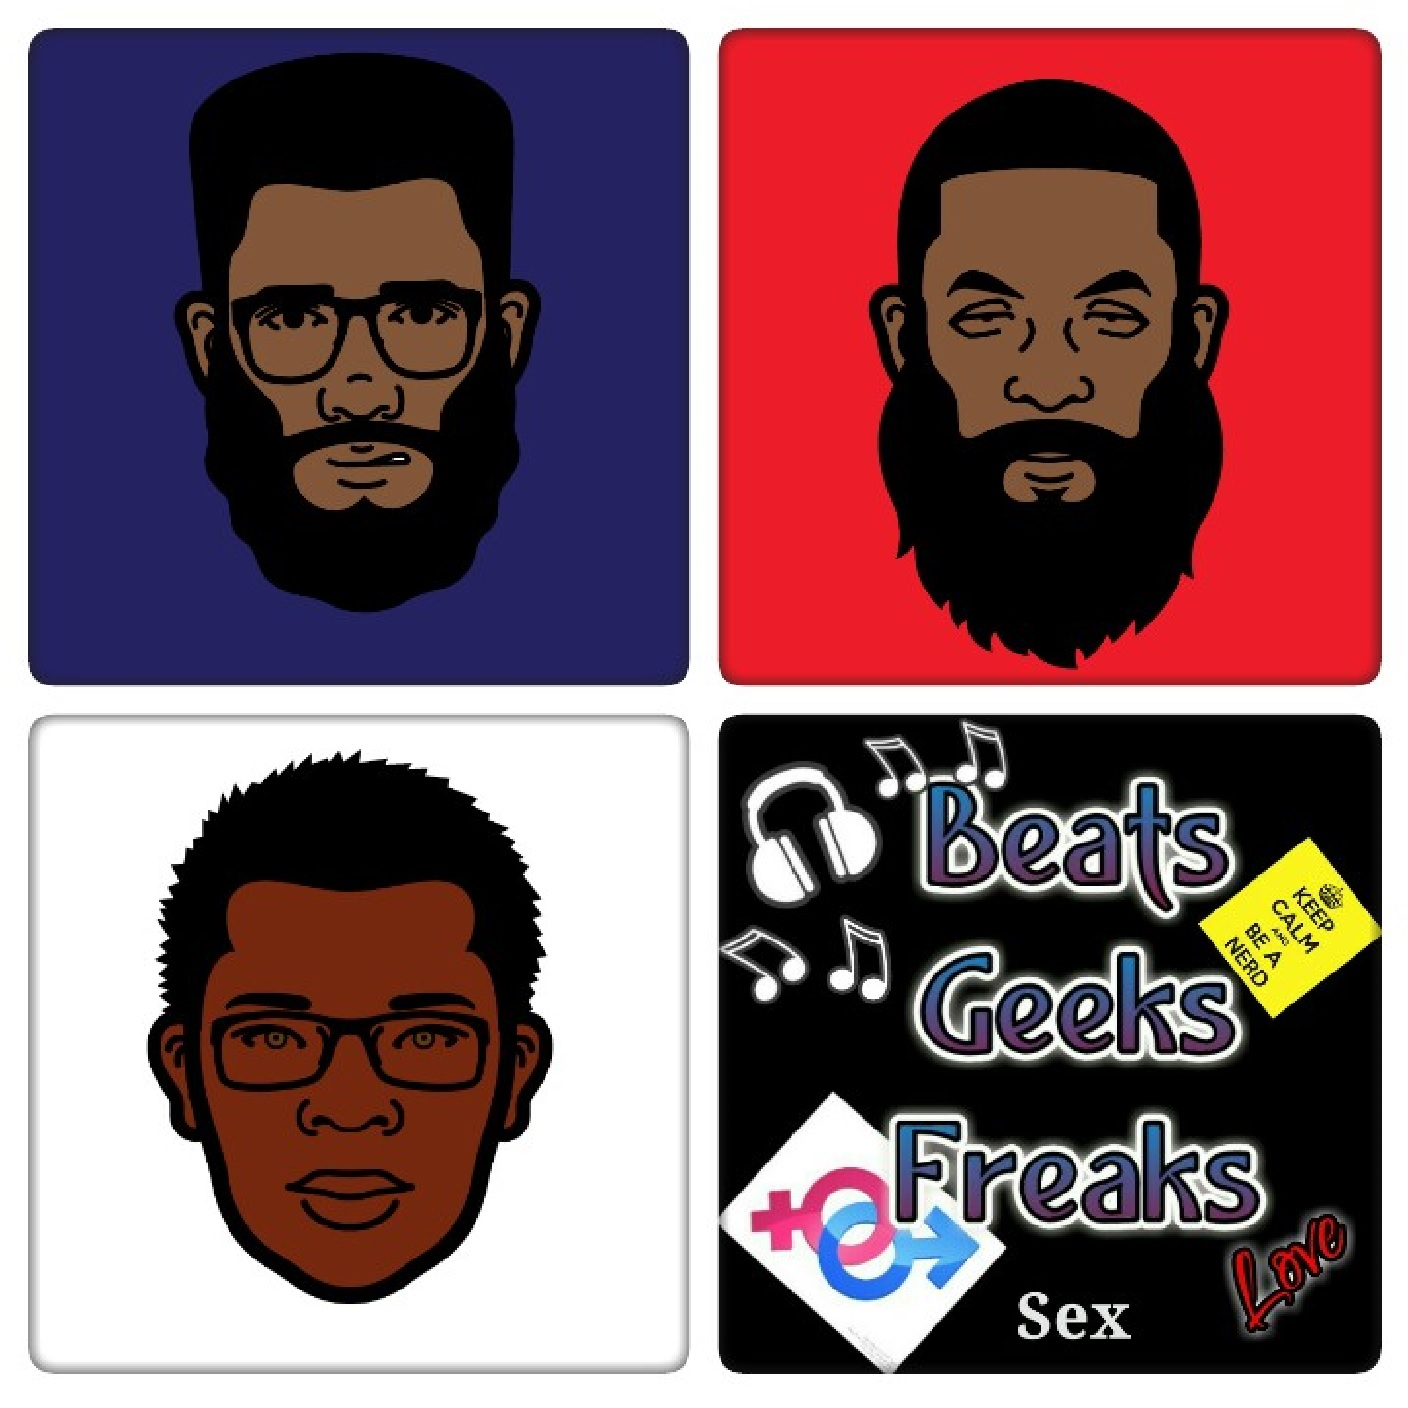 Beats, Geeks, and Freaks